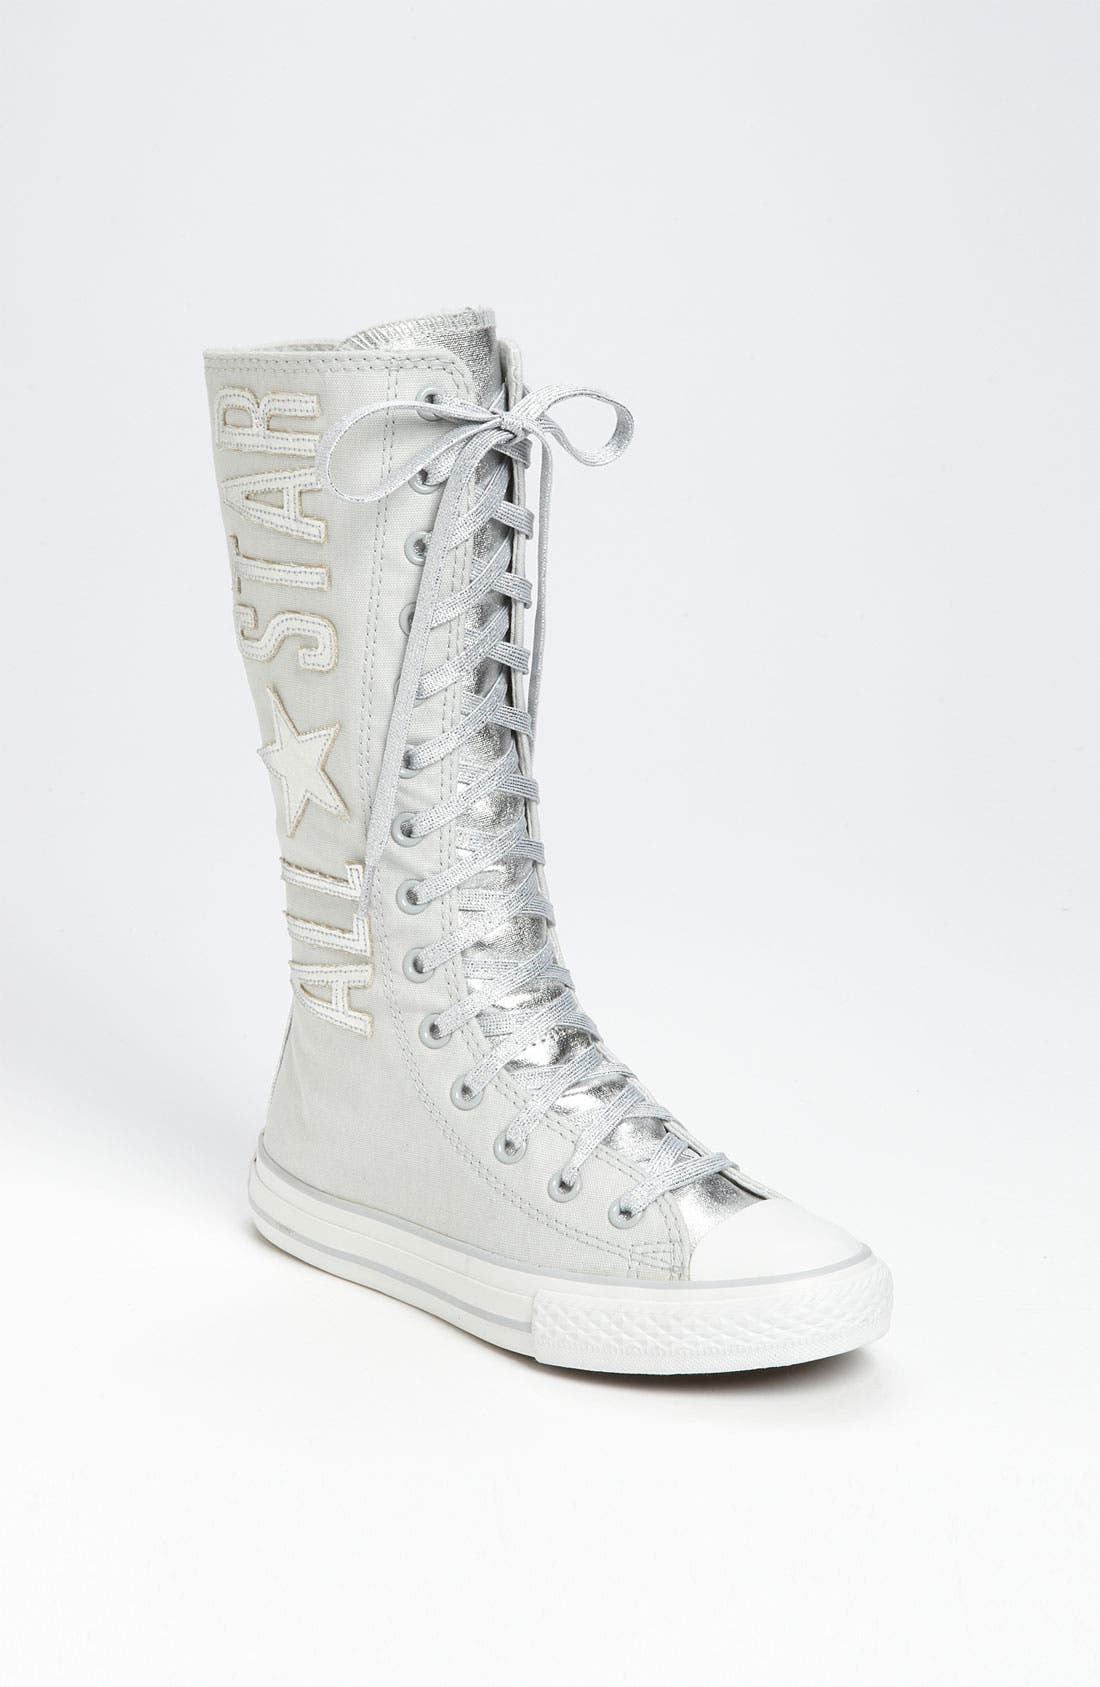 Alternate Image 1 Selected - Converse Chuck Taylor® 'X-Hi' Sneaker (Toddler, Little Kid & Big Kid)